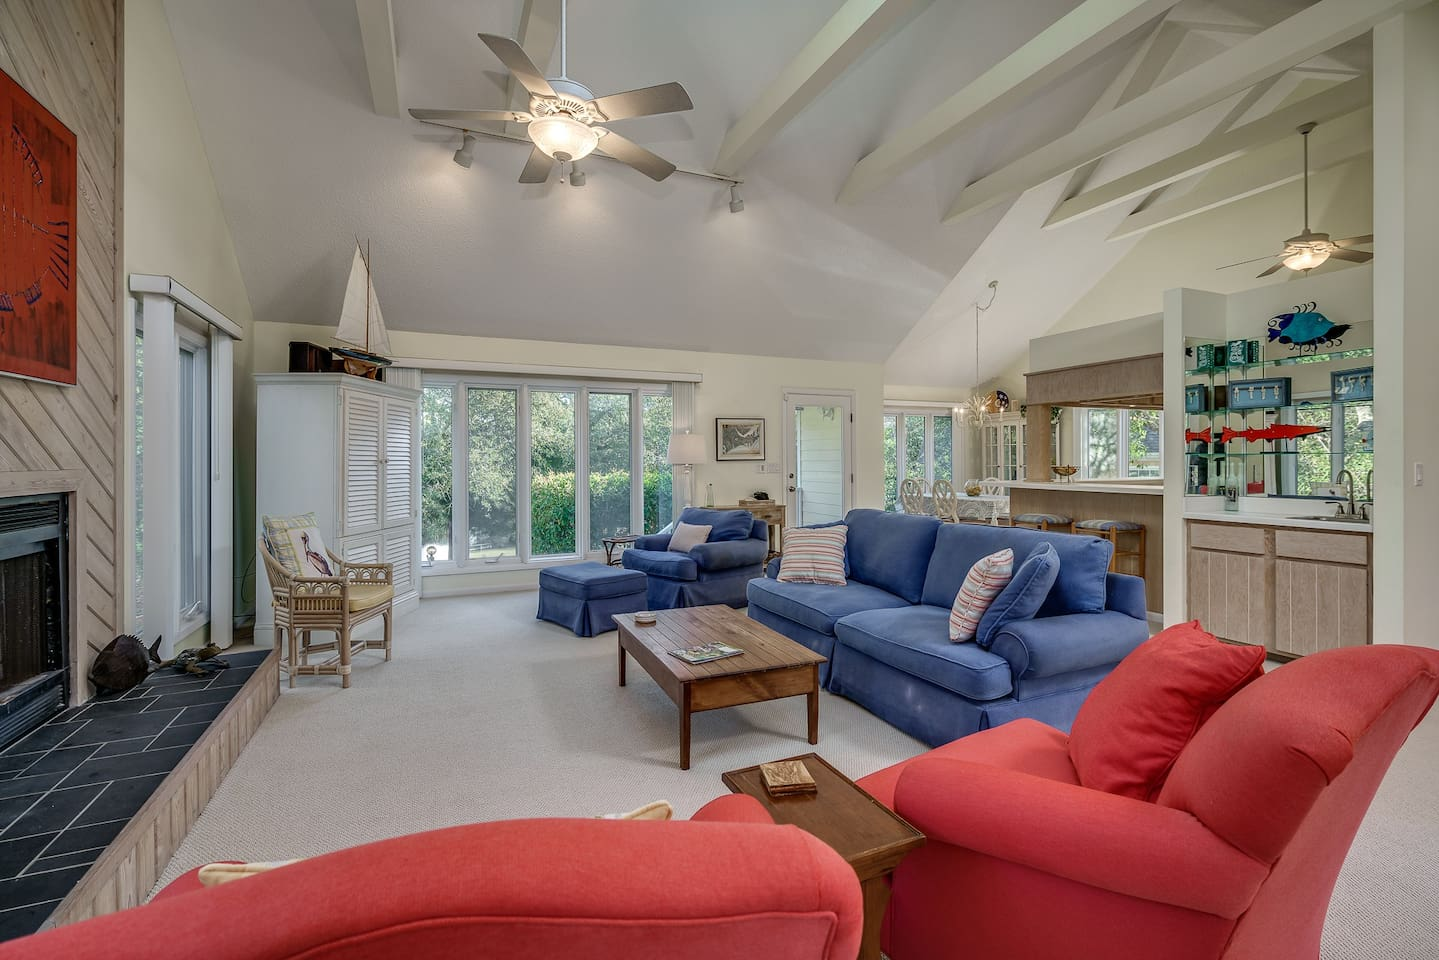 Open living room with vaulted ceiling and skylight